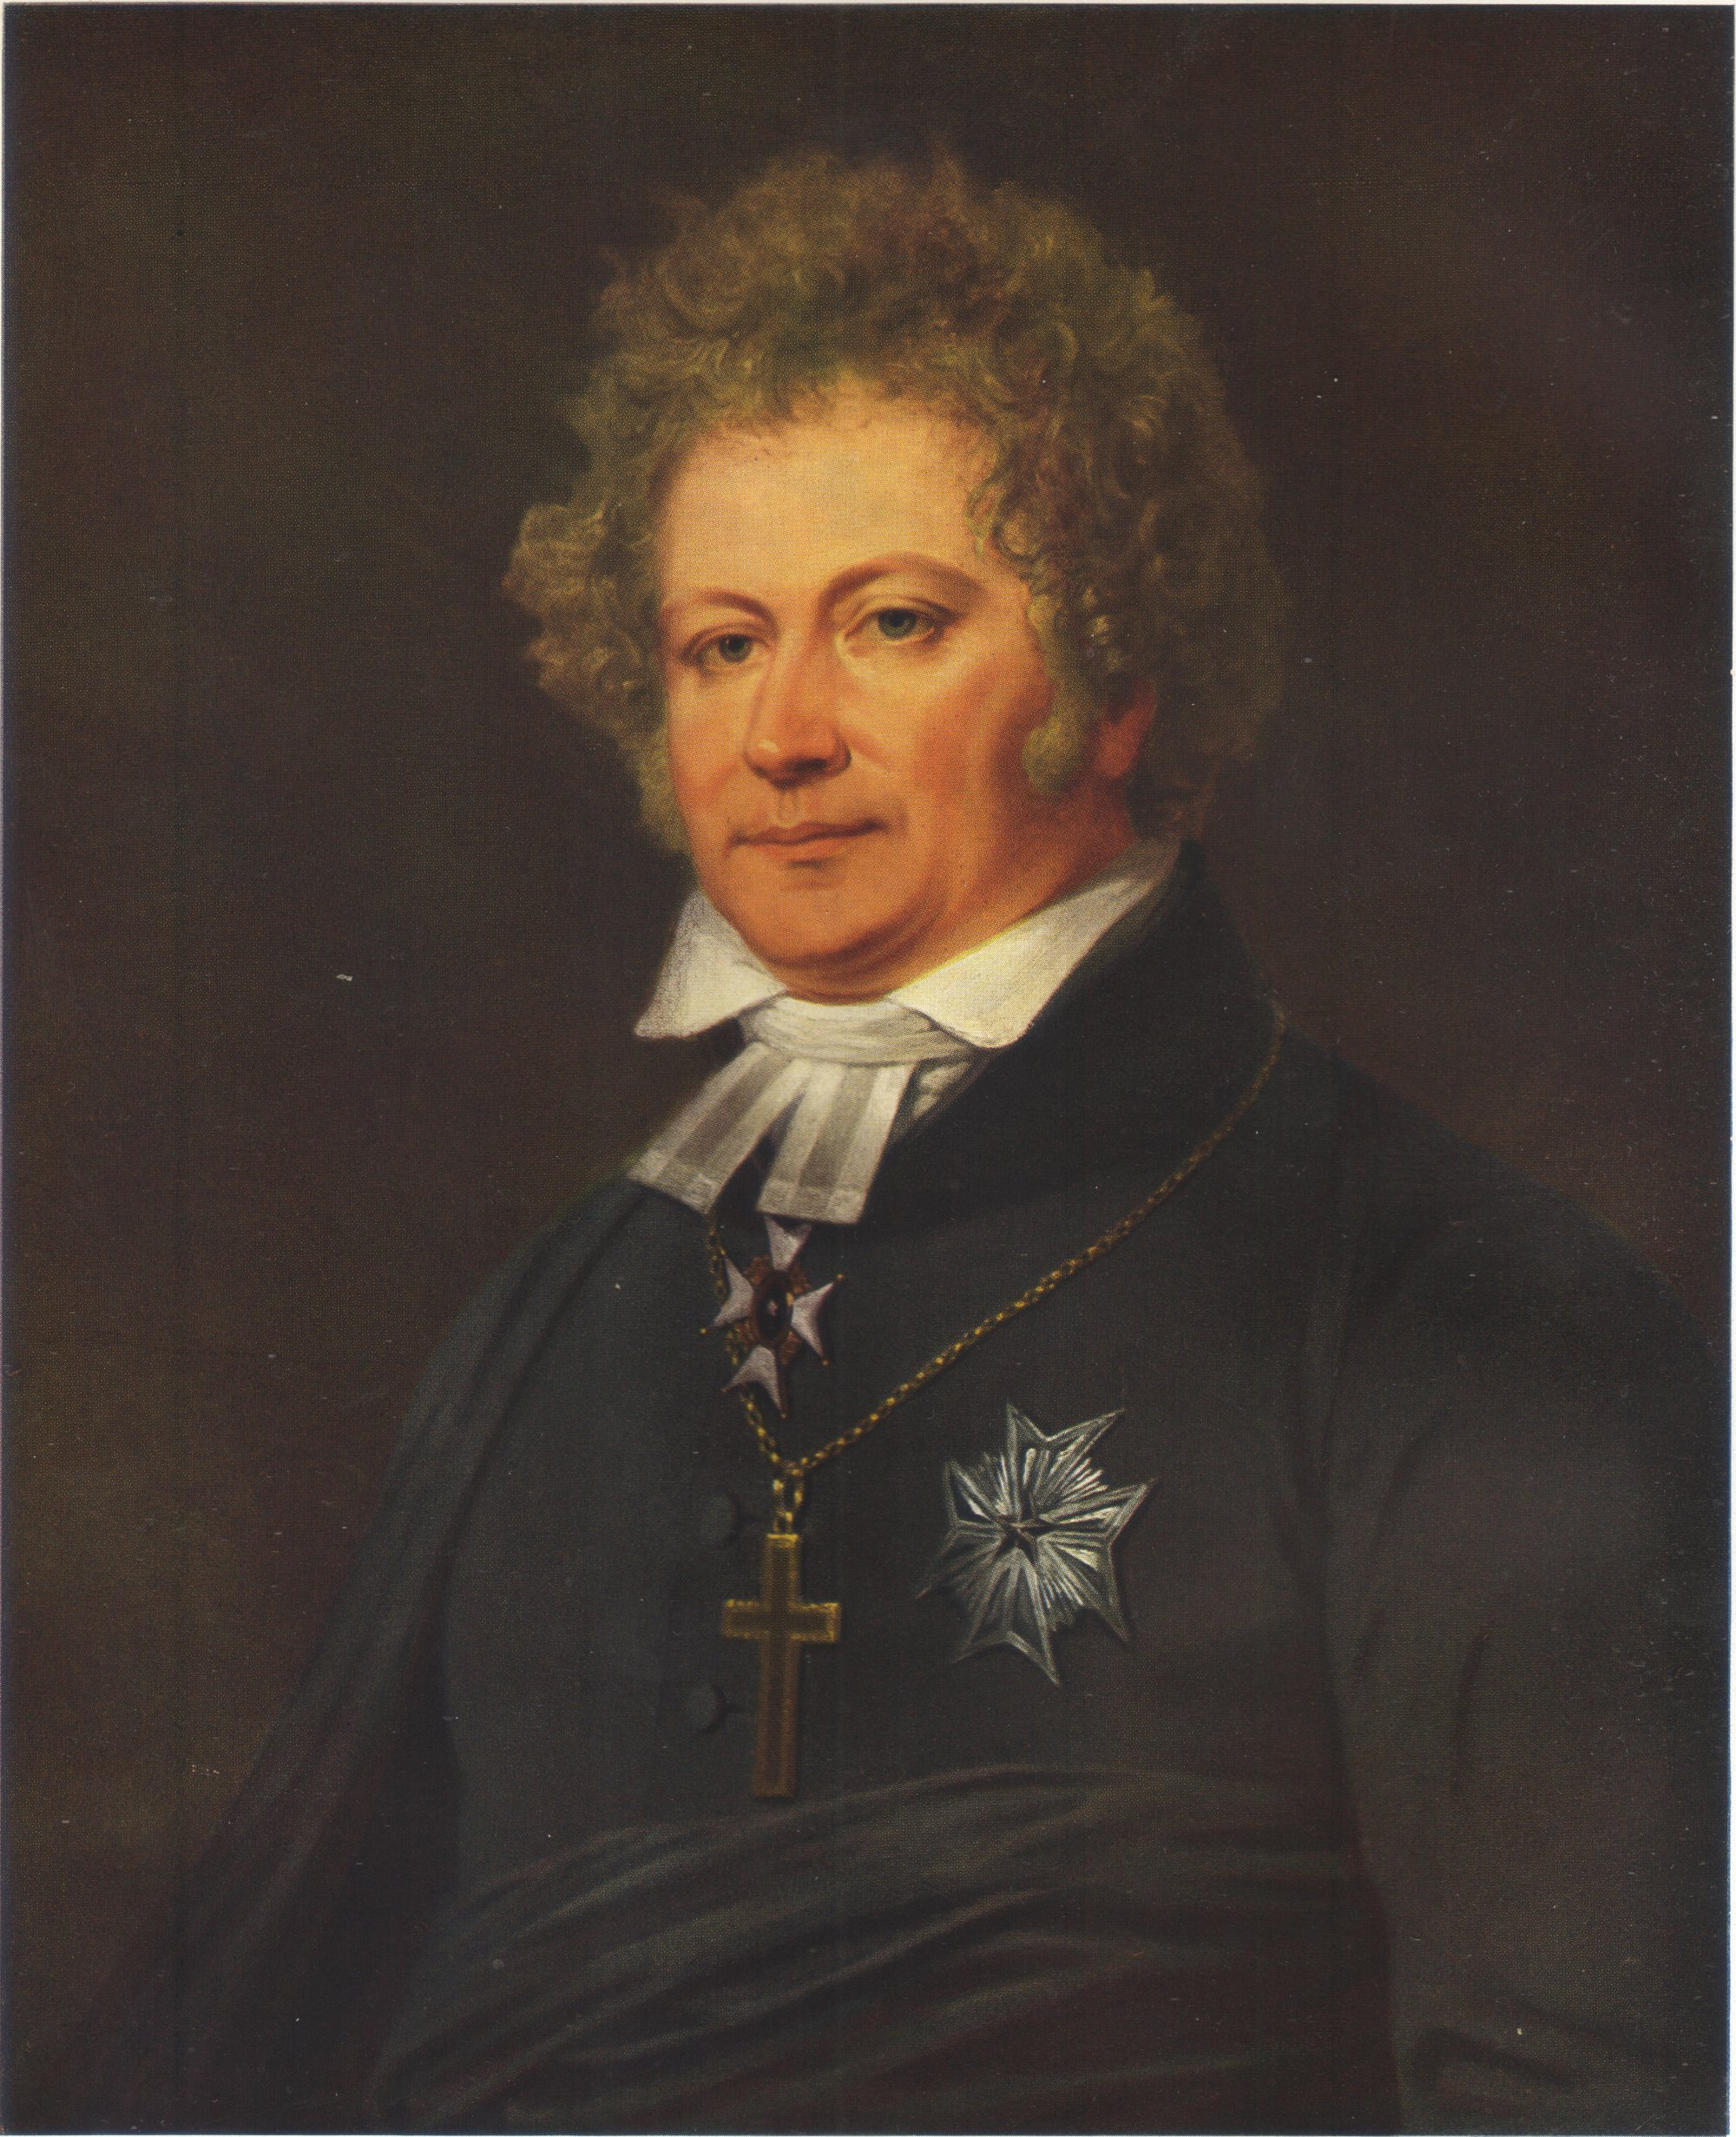 Esaias Tegnér as portrayed by [[Johan Gustaf Sandberg]], around 1826